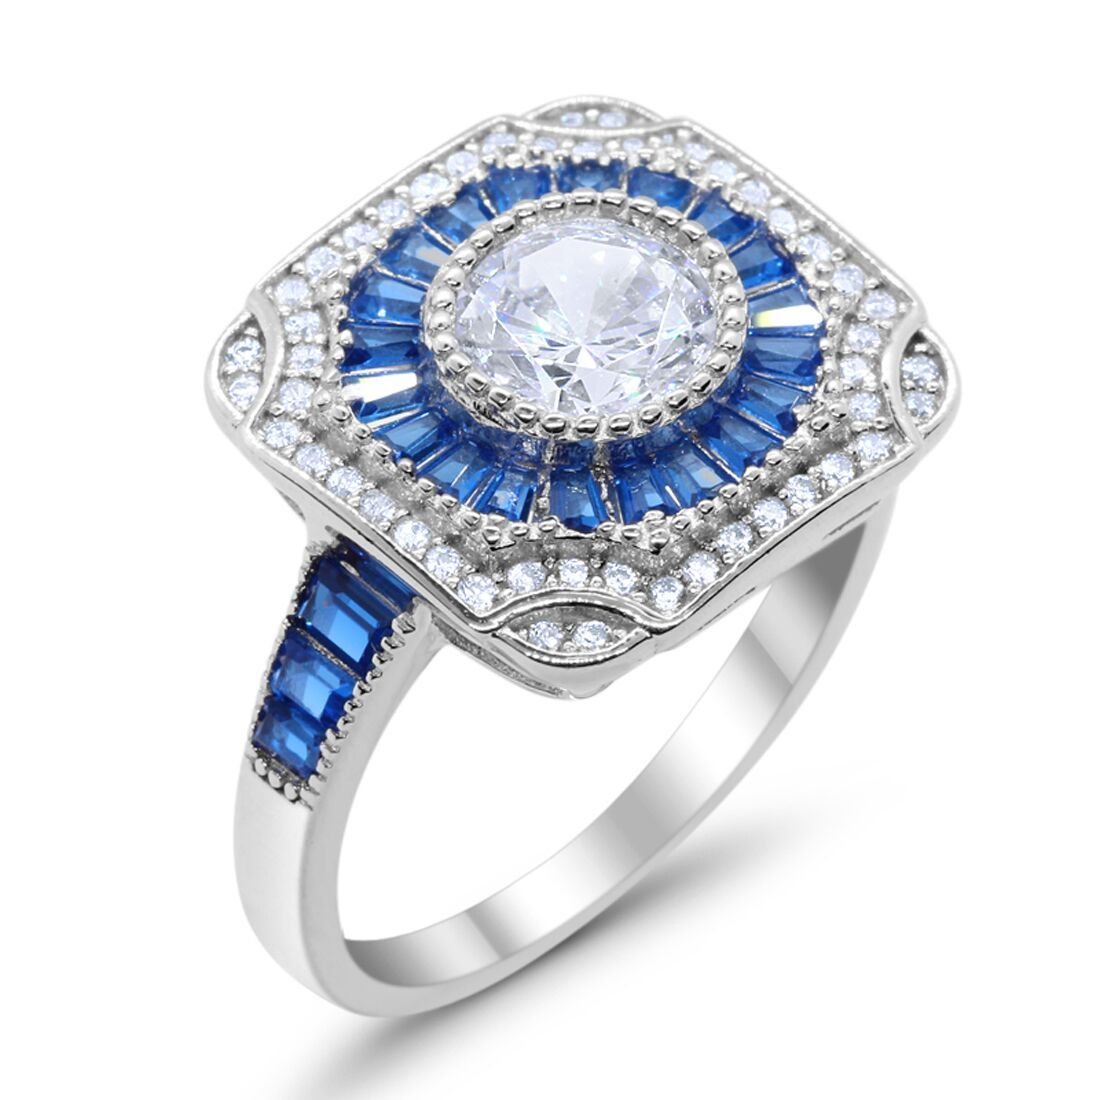 Antique Style Engagement Ring Baguette Simulated Blue Sapphire CZ 925 Sterling Silver